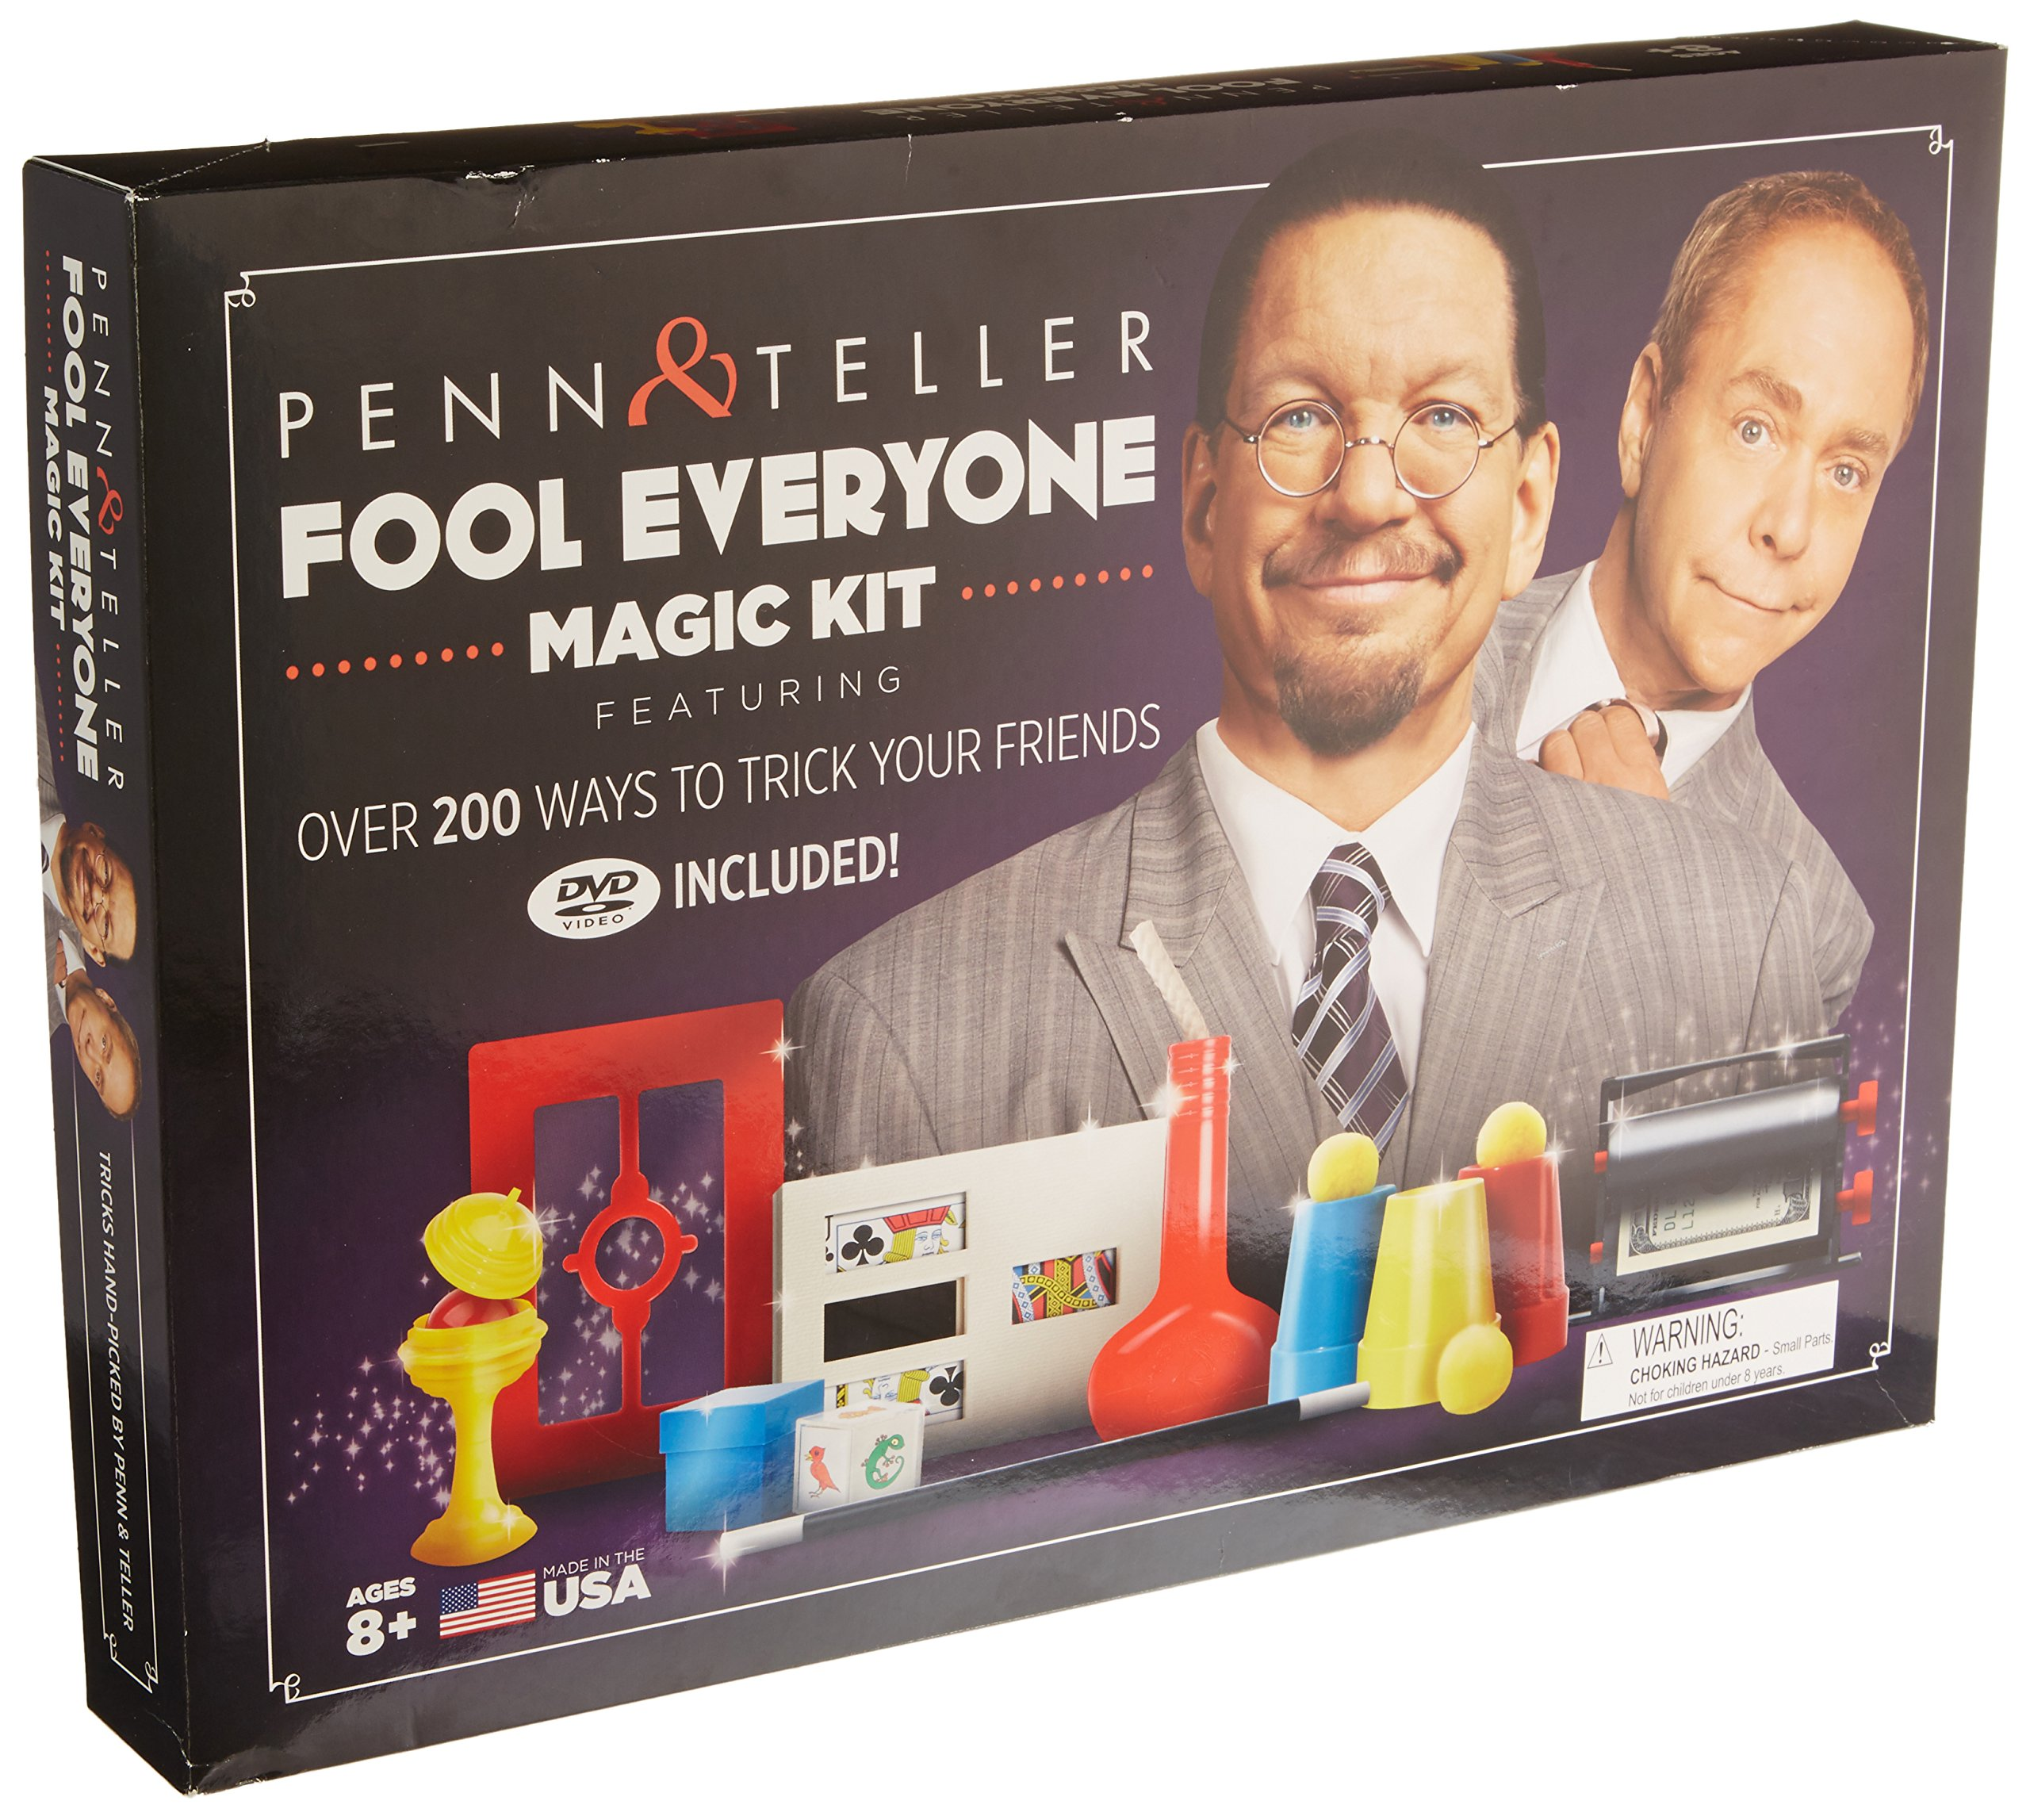 The Penn & Teller Fool Everyone Magic Kit - Over 200 Ways To Trick Your Friends by Fun Inc. (Image #2)